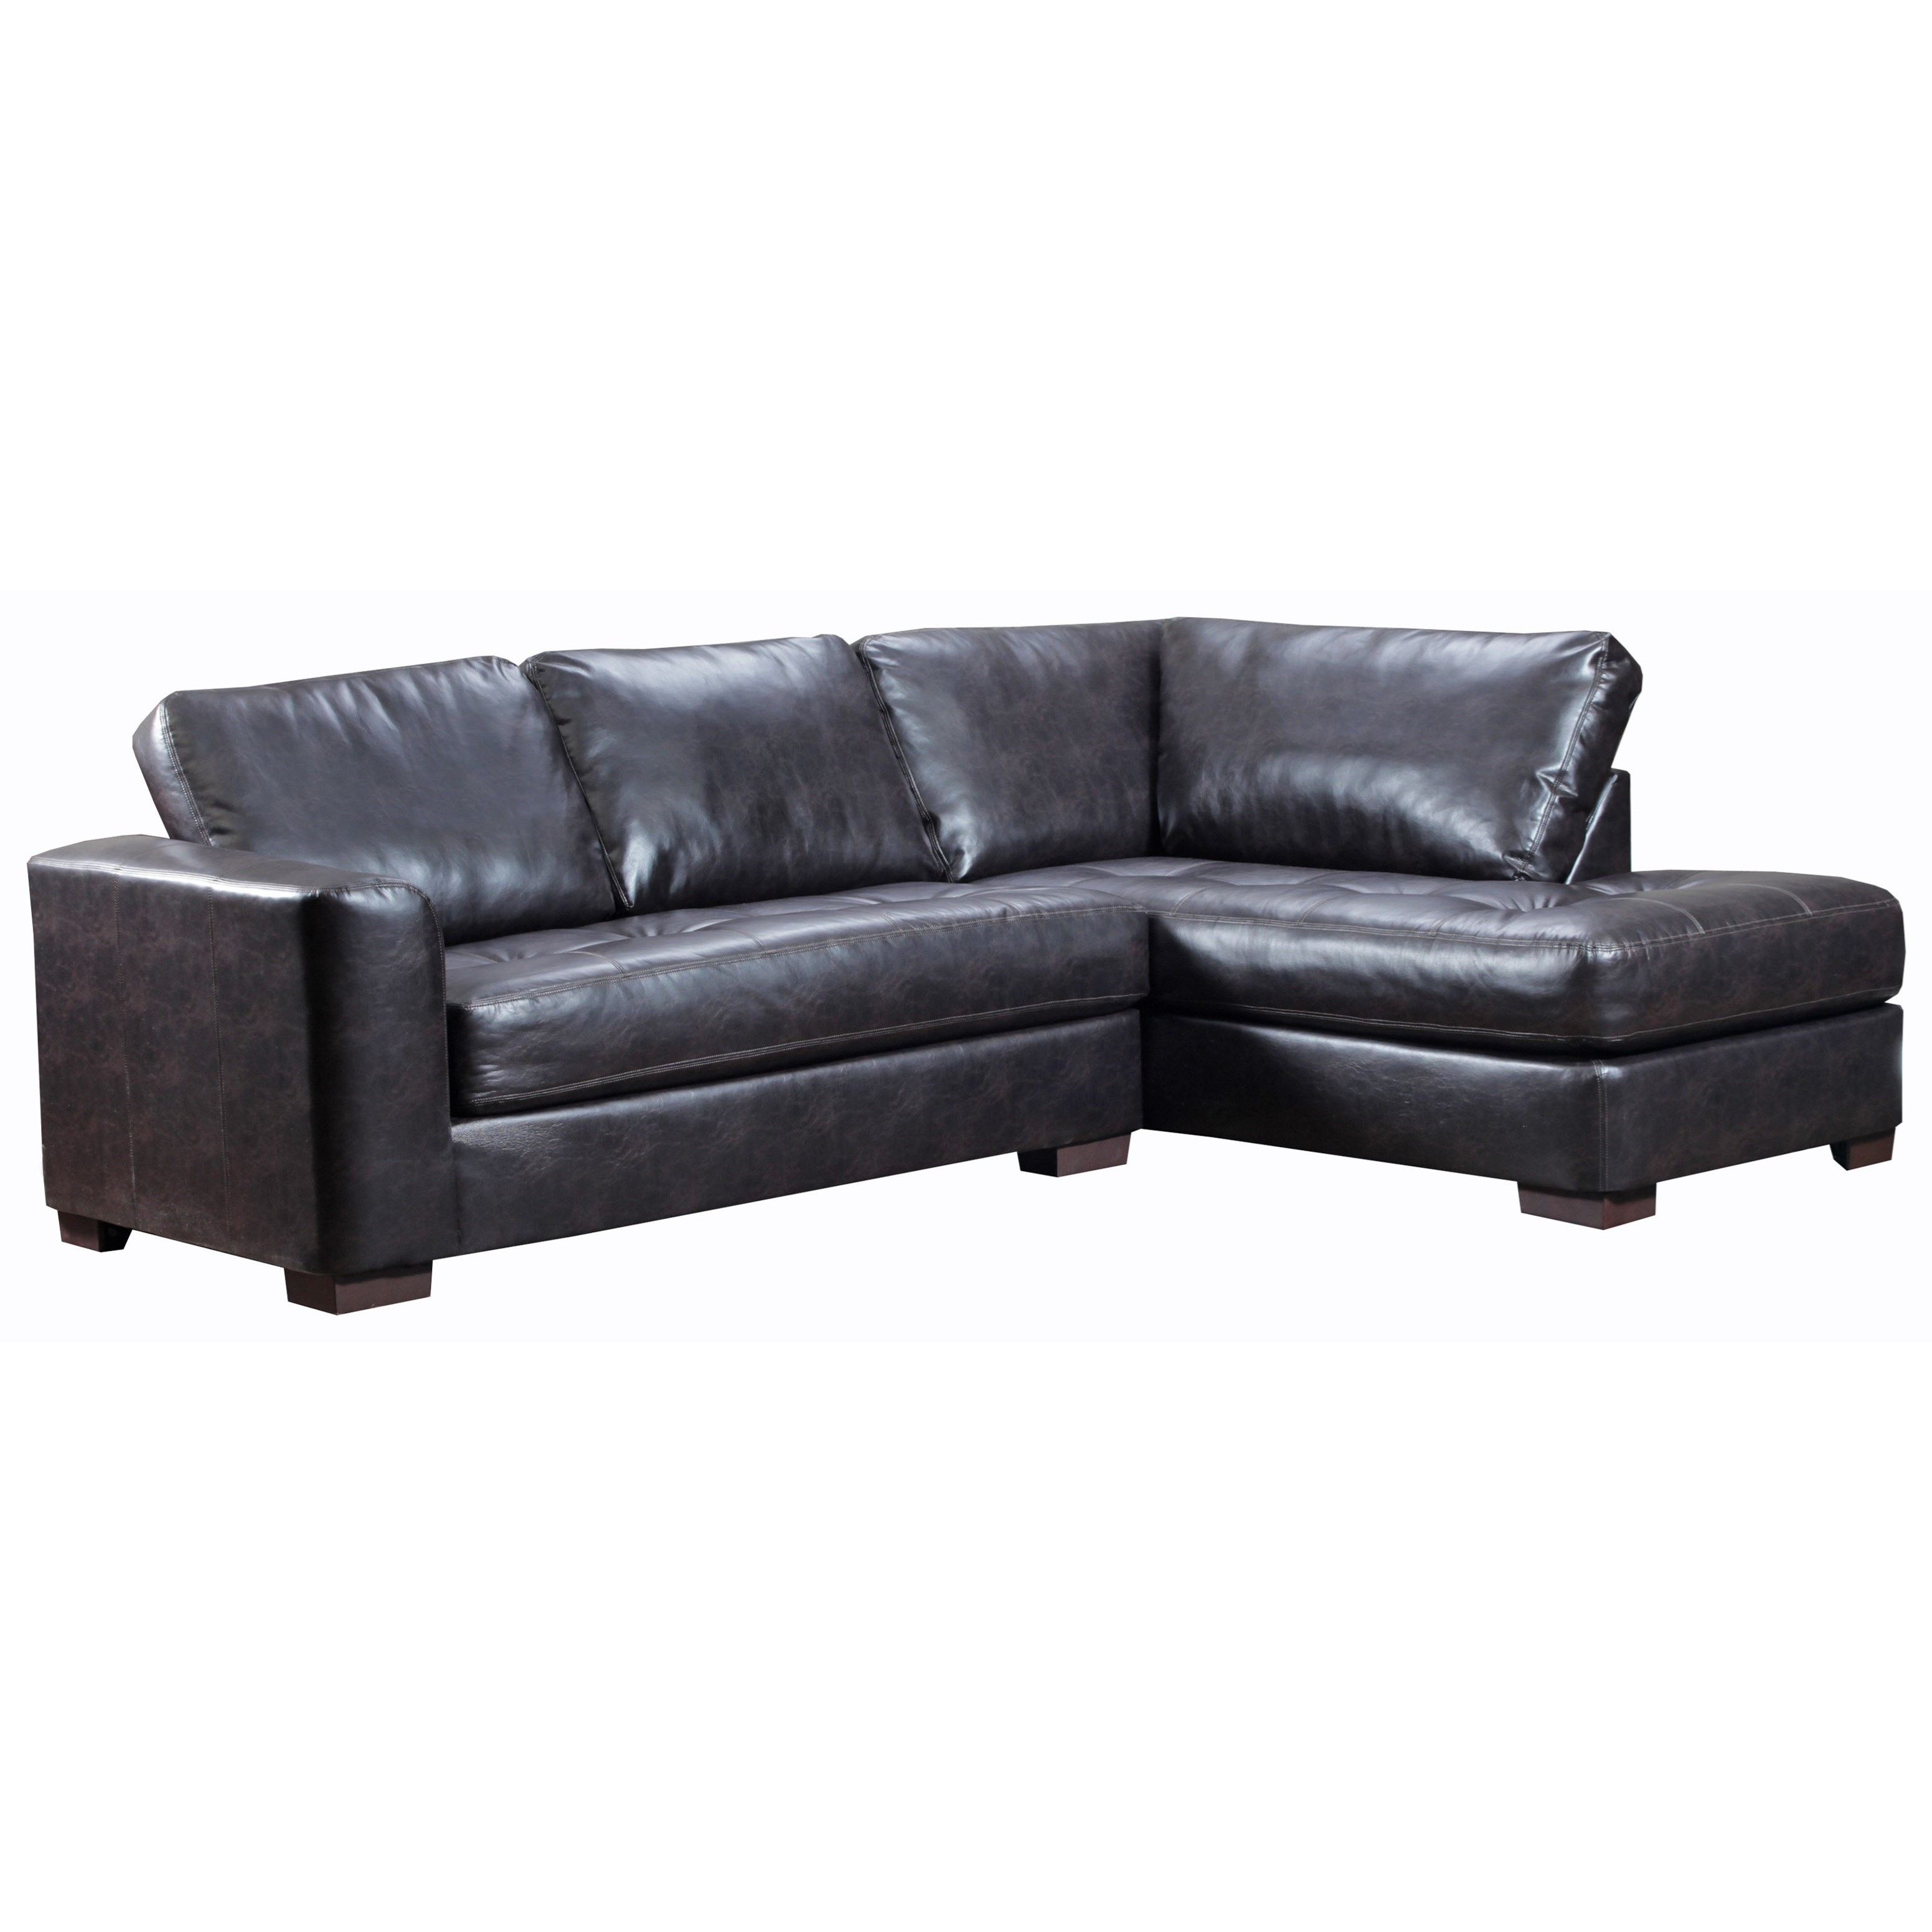 United Furniture Industries 4558 Sectional Sofa with Chaise | Rooms ...